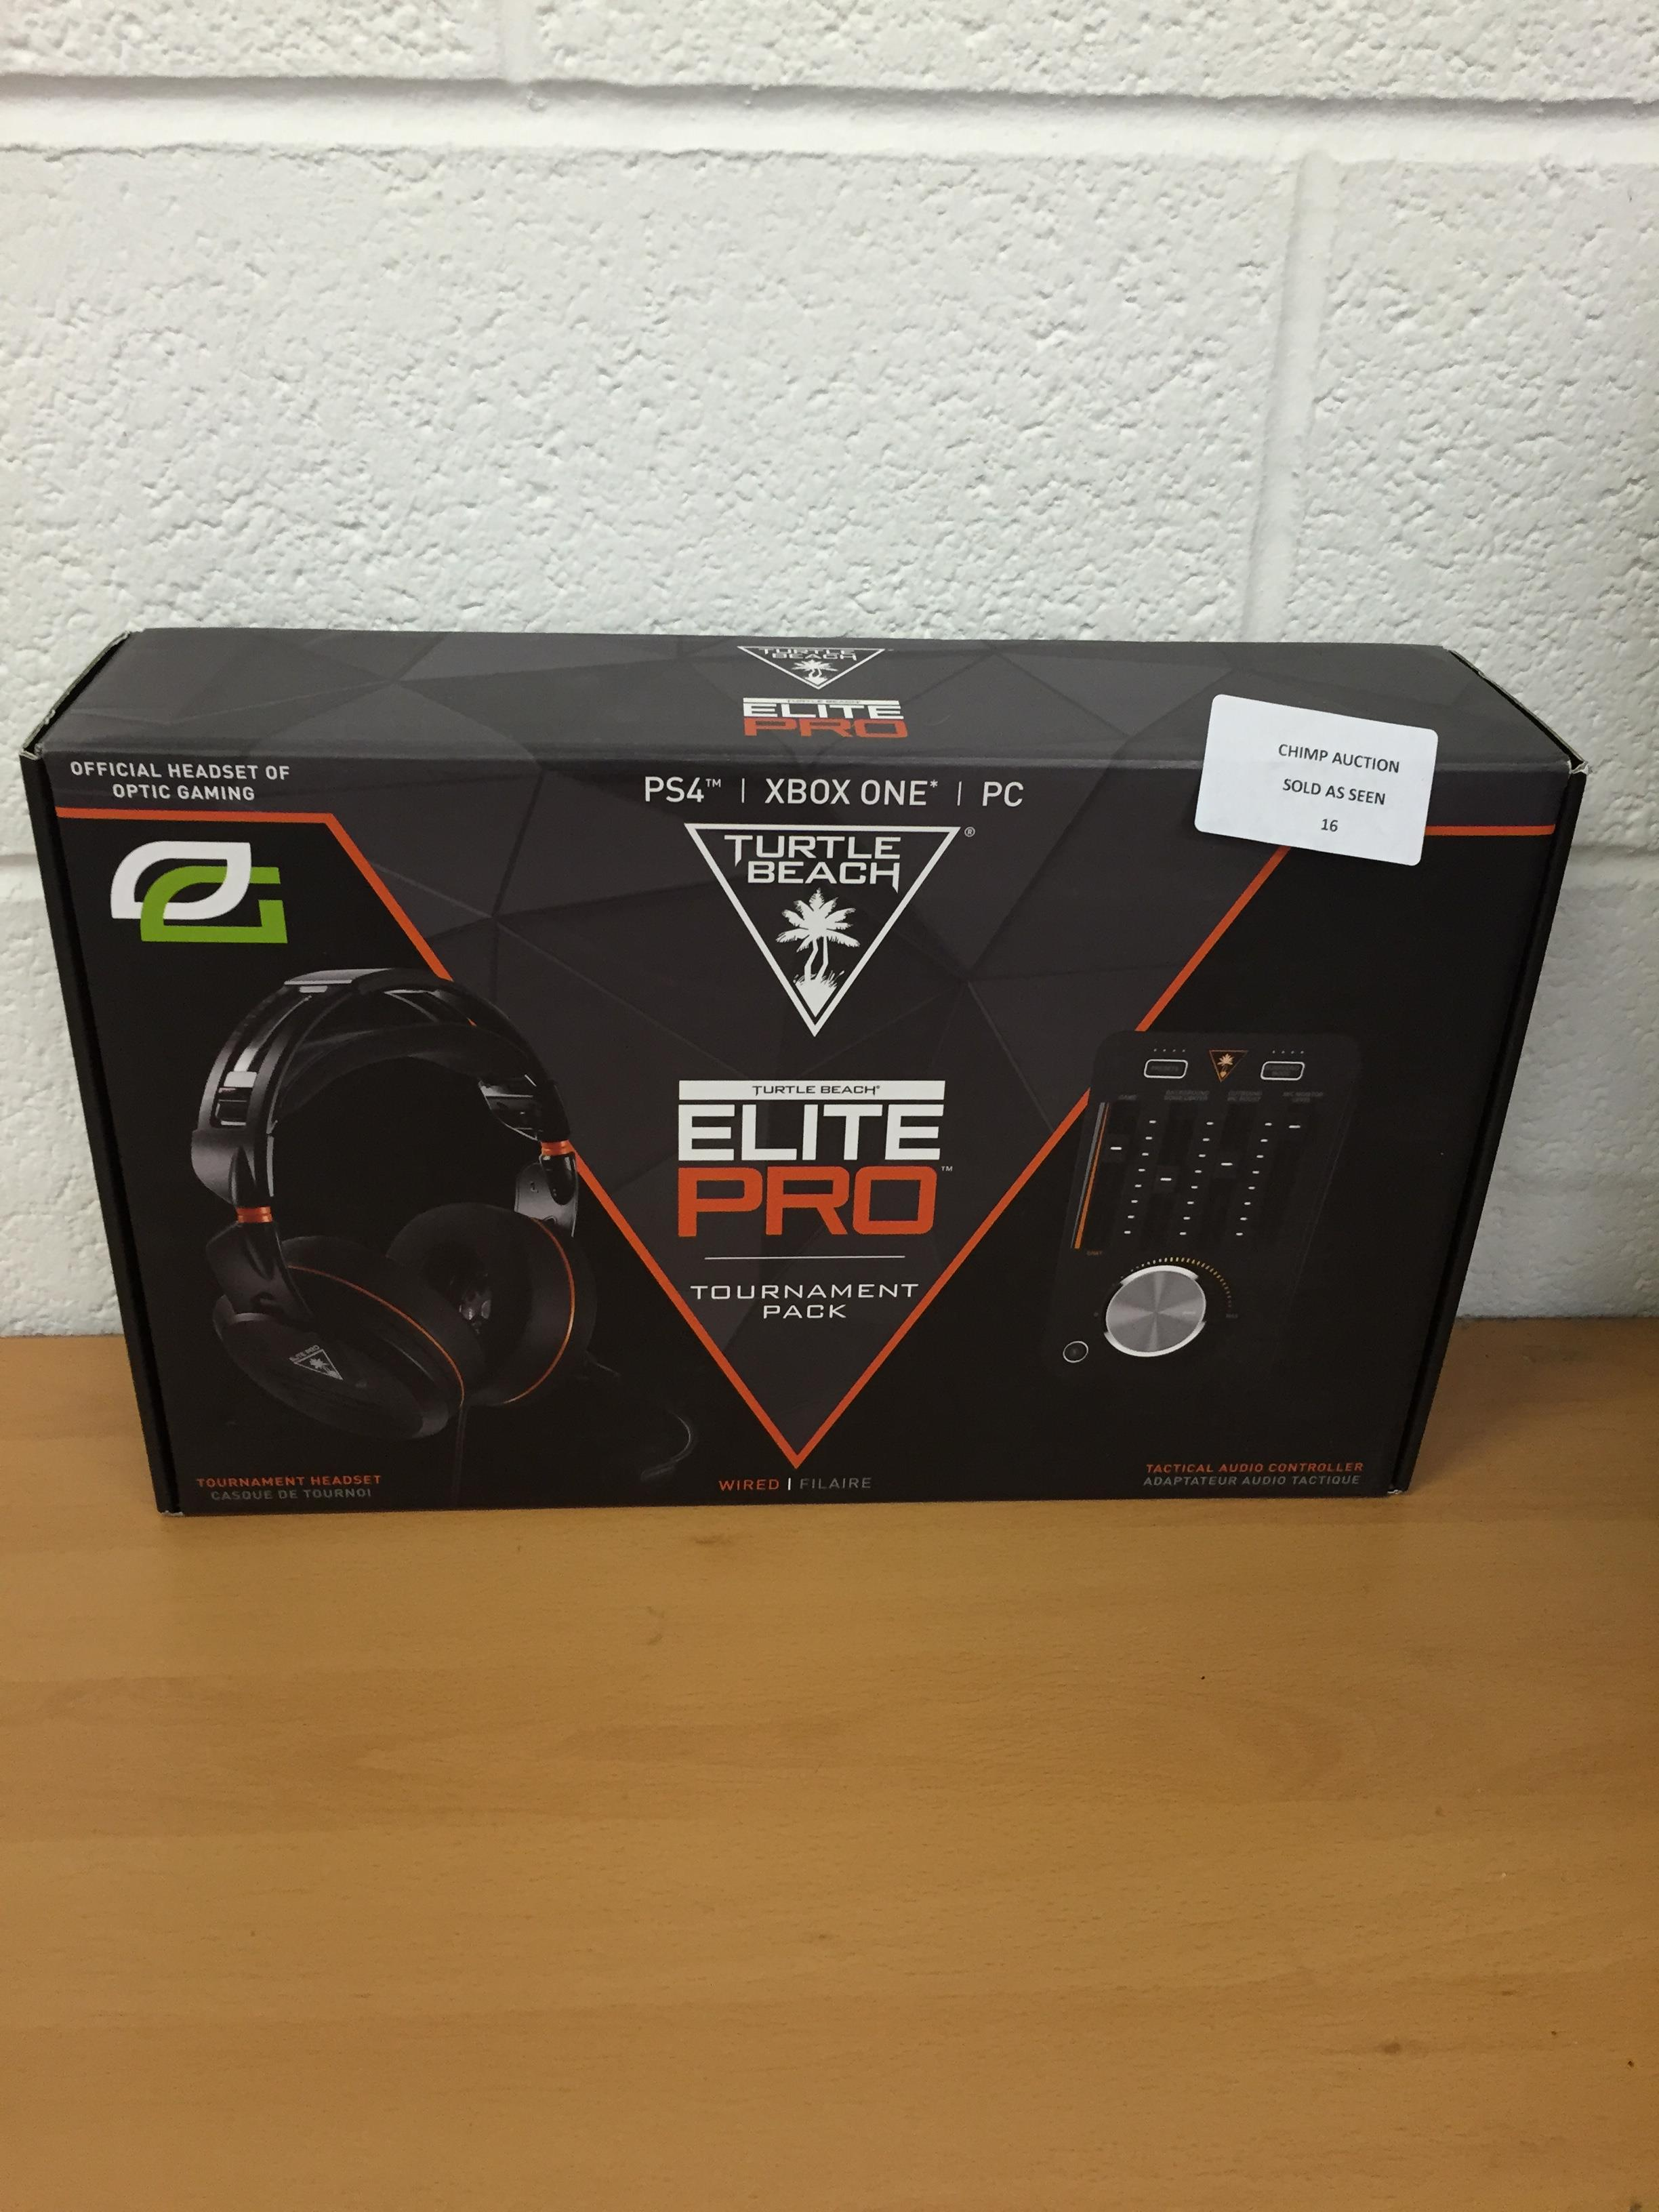 Lot 16 - Elite Pro Tournament Gaming Headset and TAC Bundle - RRP £269.99.